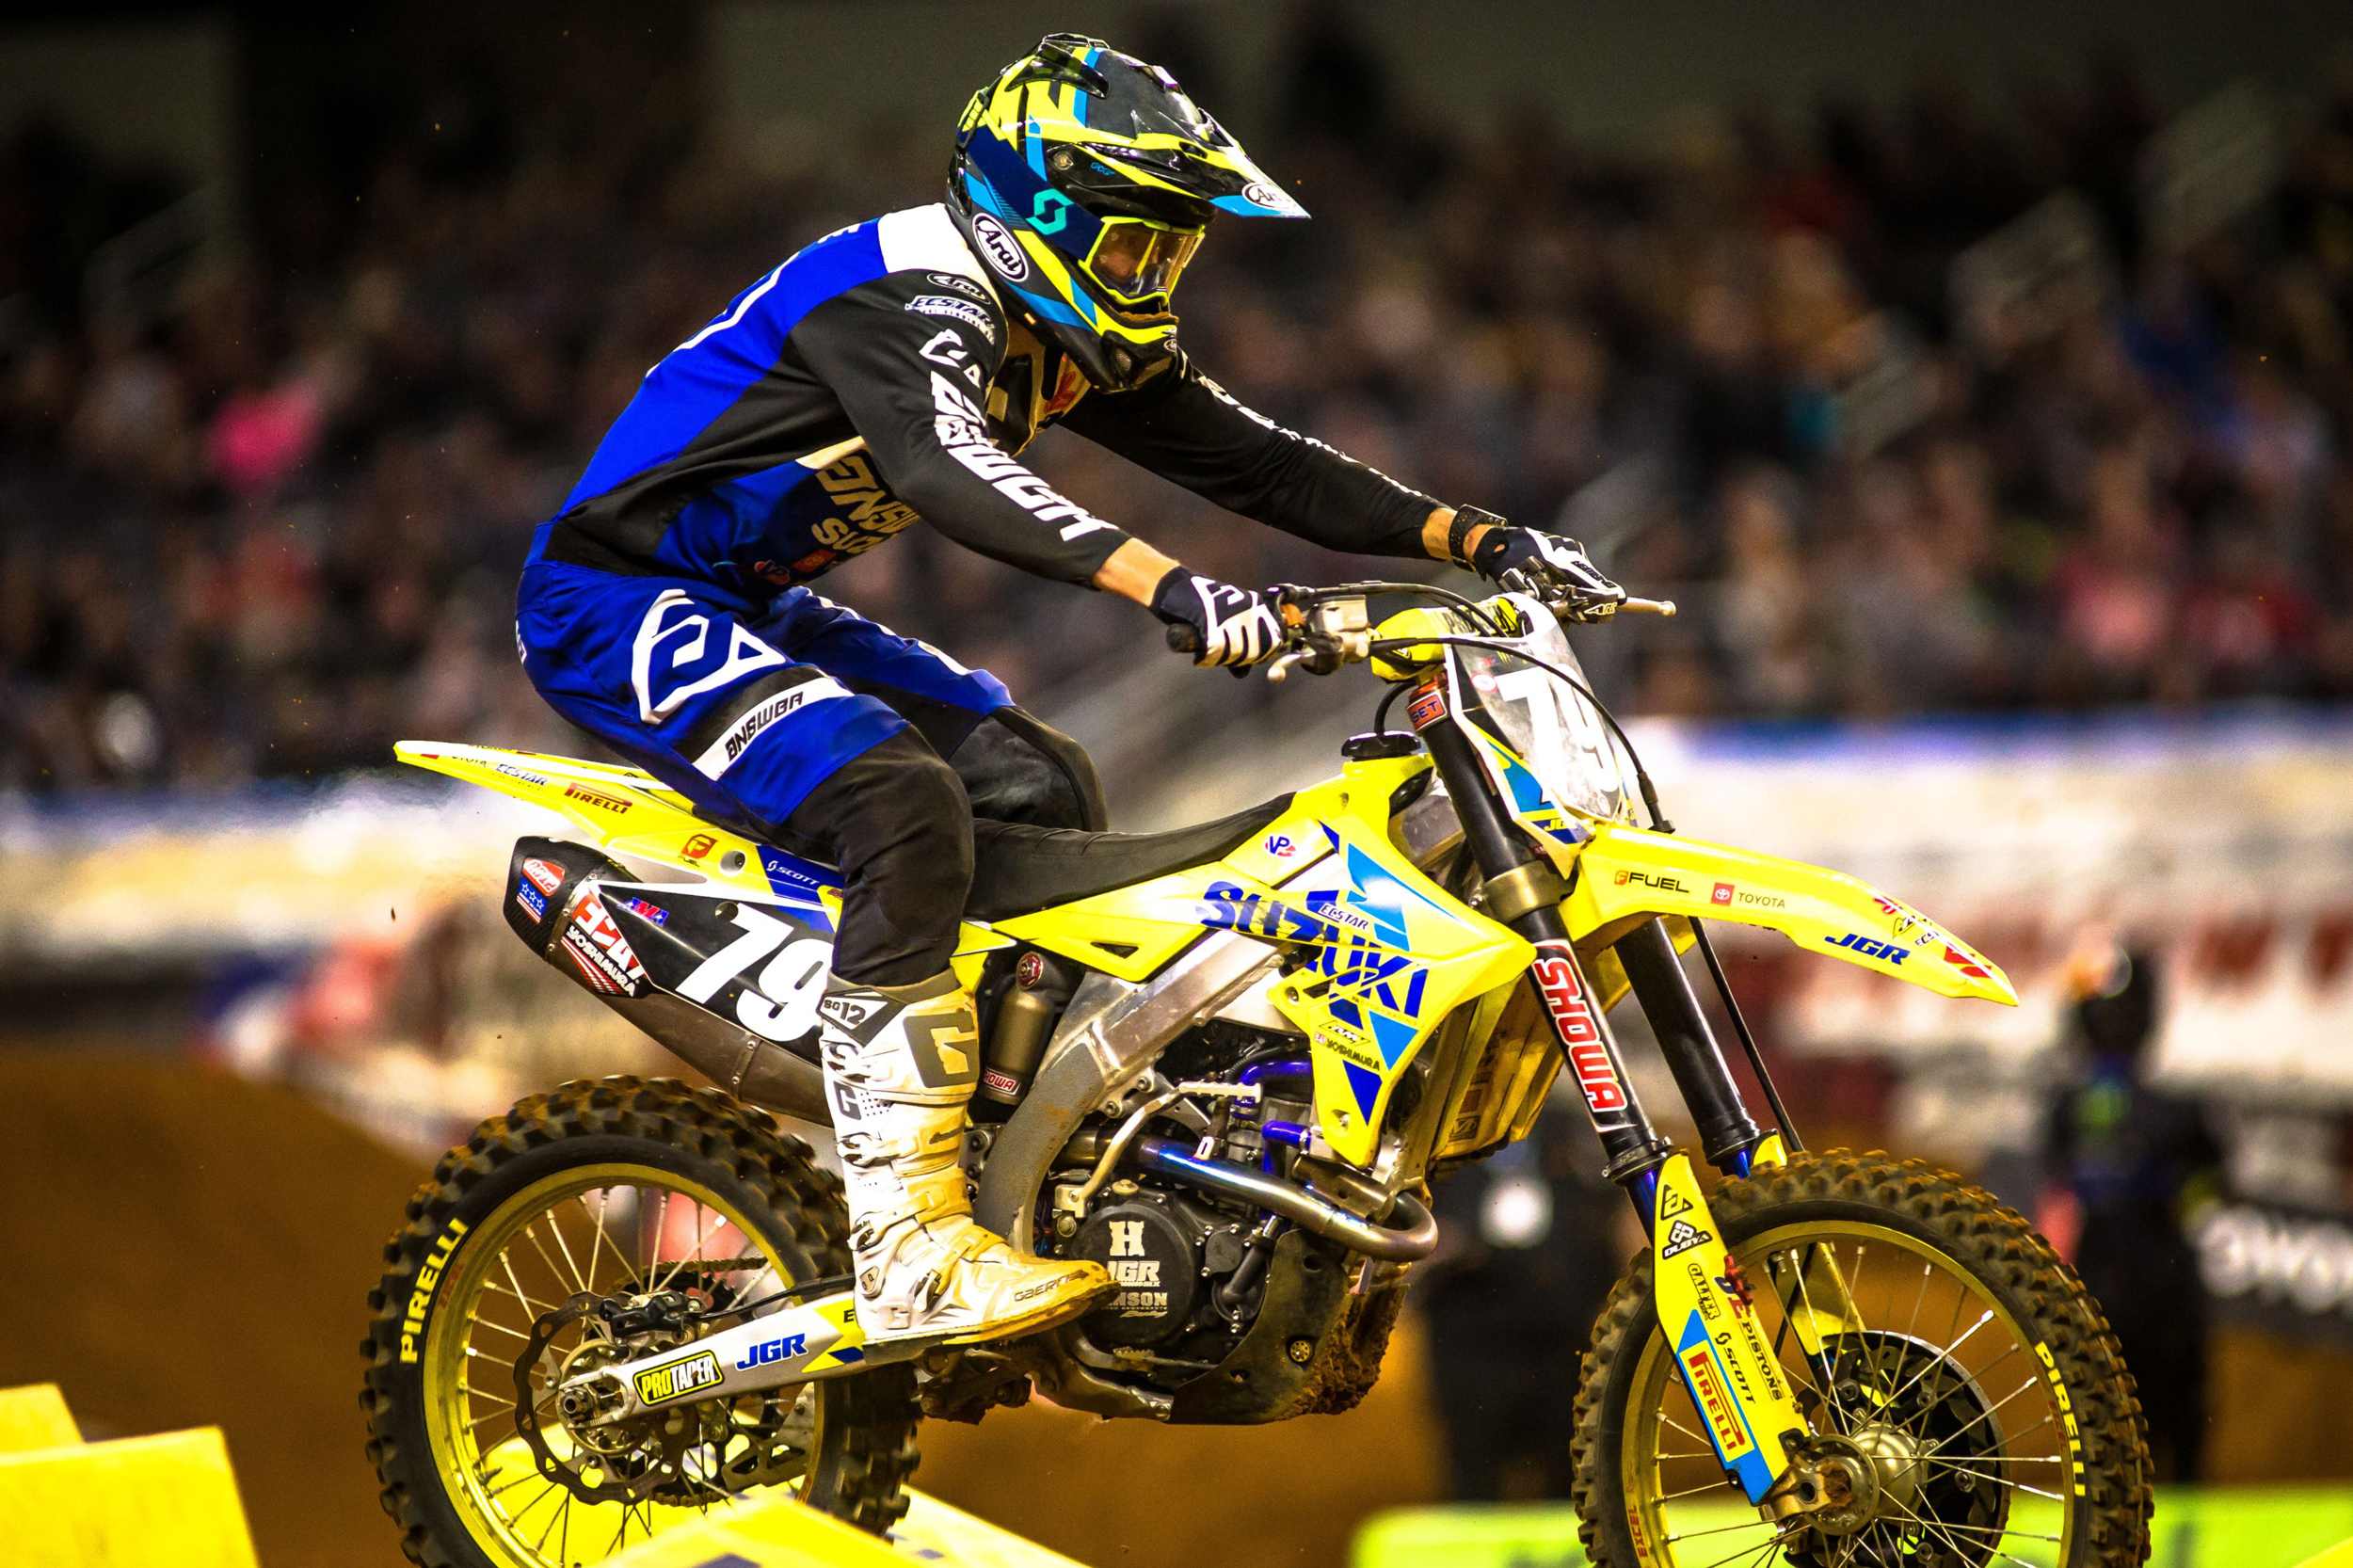 Isaac Teasdale (#79) showed speed during his fill-in ride with the team on his Suzuki RM-Z250